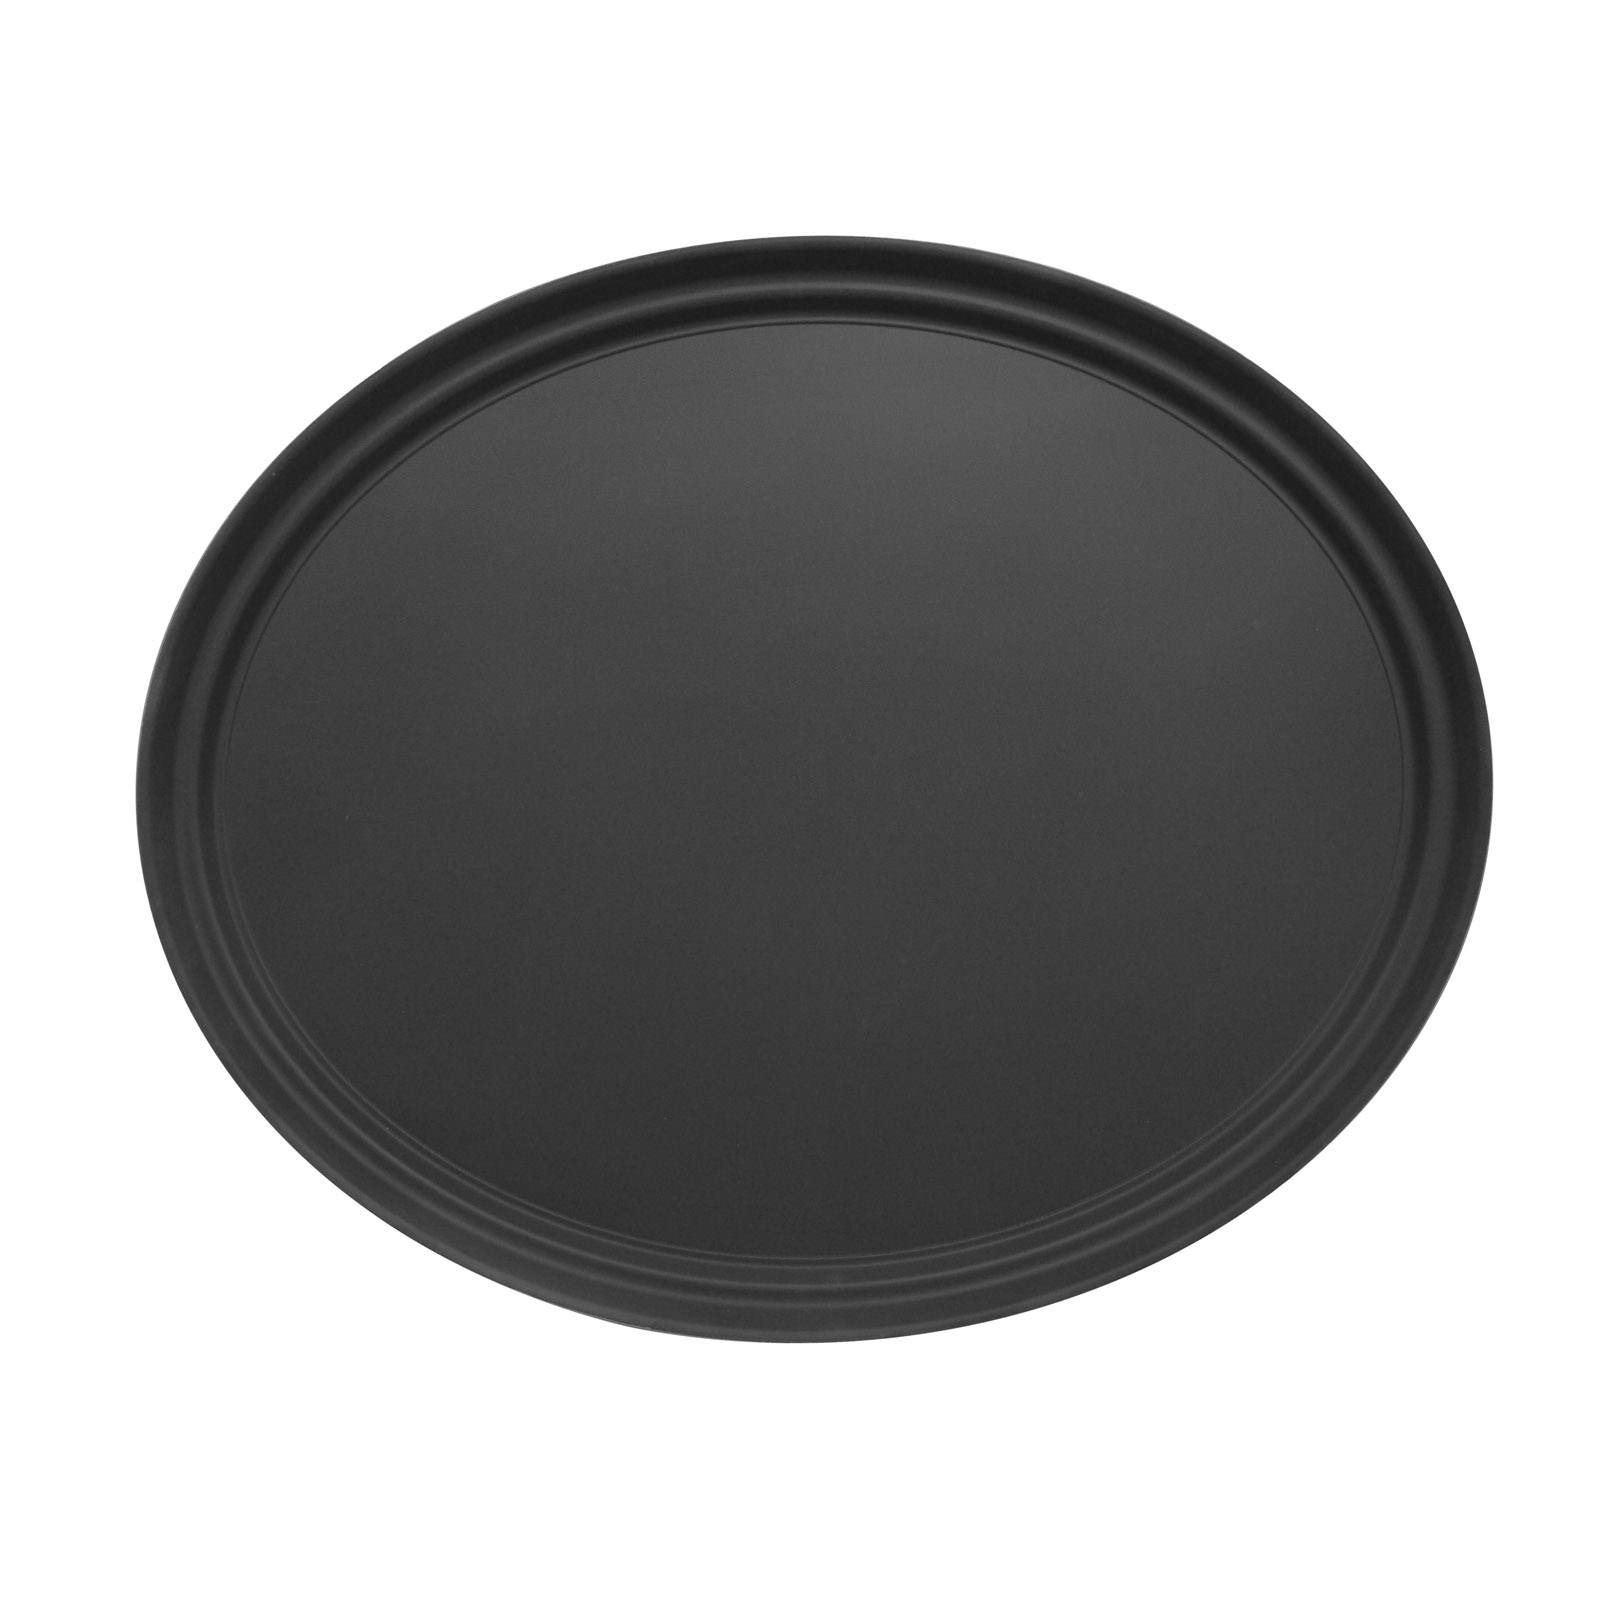 Admiral Craft NST-2429BK/OVAL serving tray, non-skid